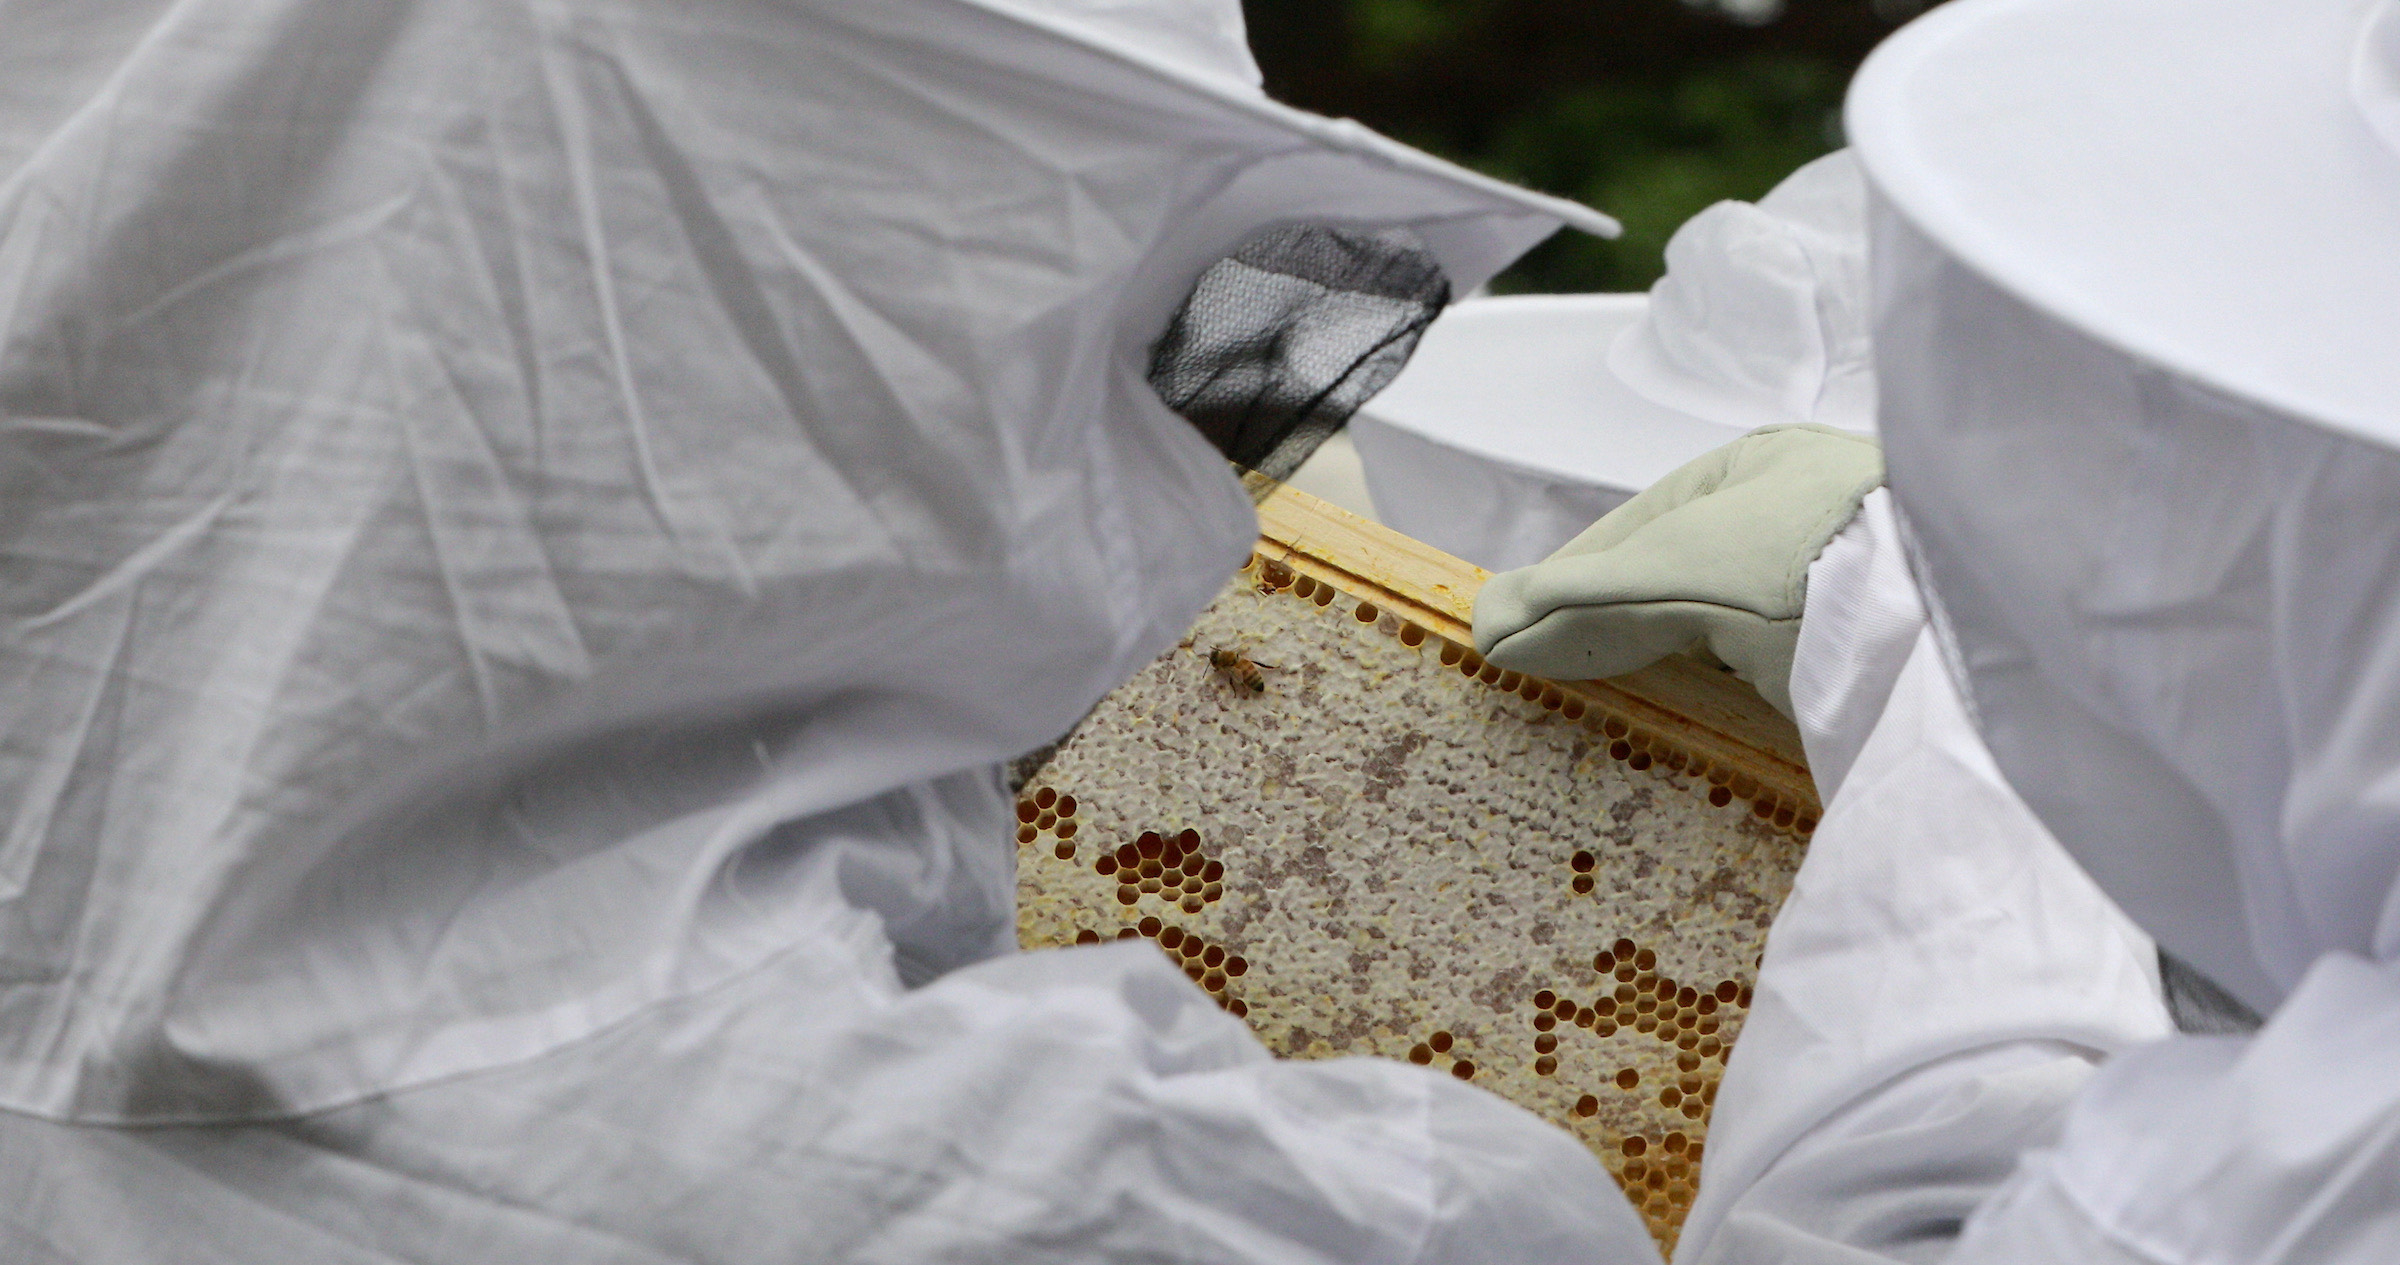 """Richard Miscovich is the co-adviser for Johnson & Wales's """"Bee the Change"""" student club, which has two beehives to teach students how to become beekeepers and to produce honey on campus."""